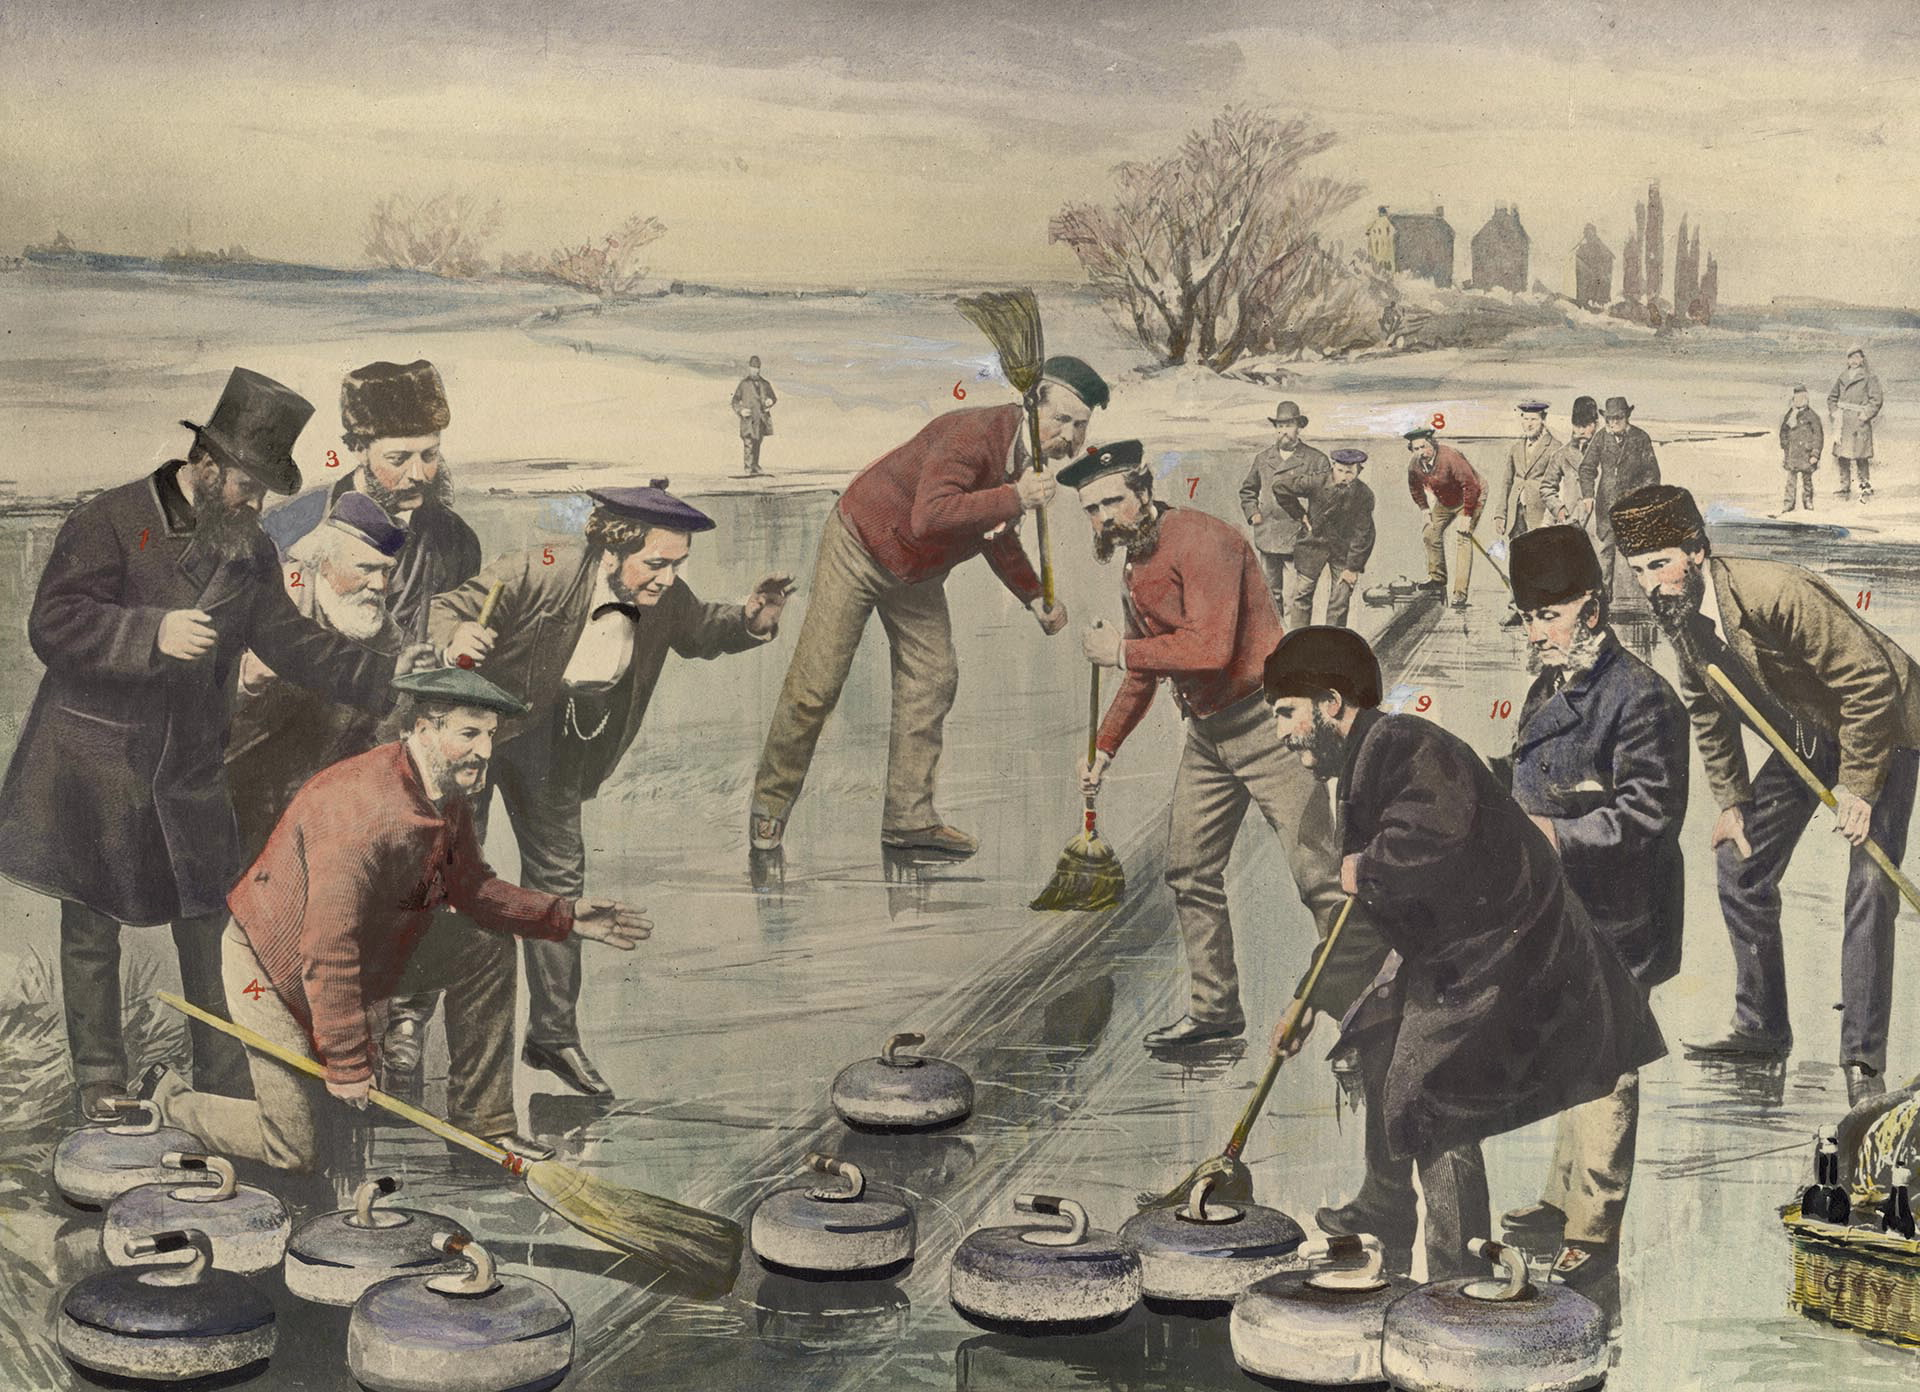 Red_Jacket_Rink_of_the_Toronto_Curling_Club_in_match_at_mouth_of_Don_River_in_Toronto_Bay,_1872